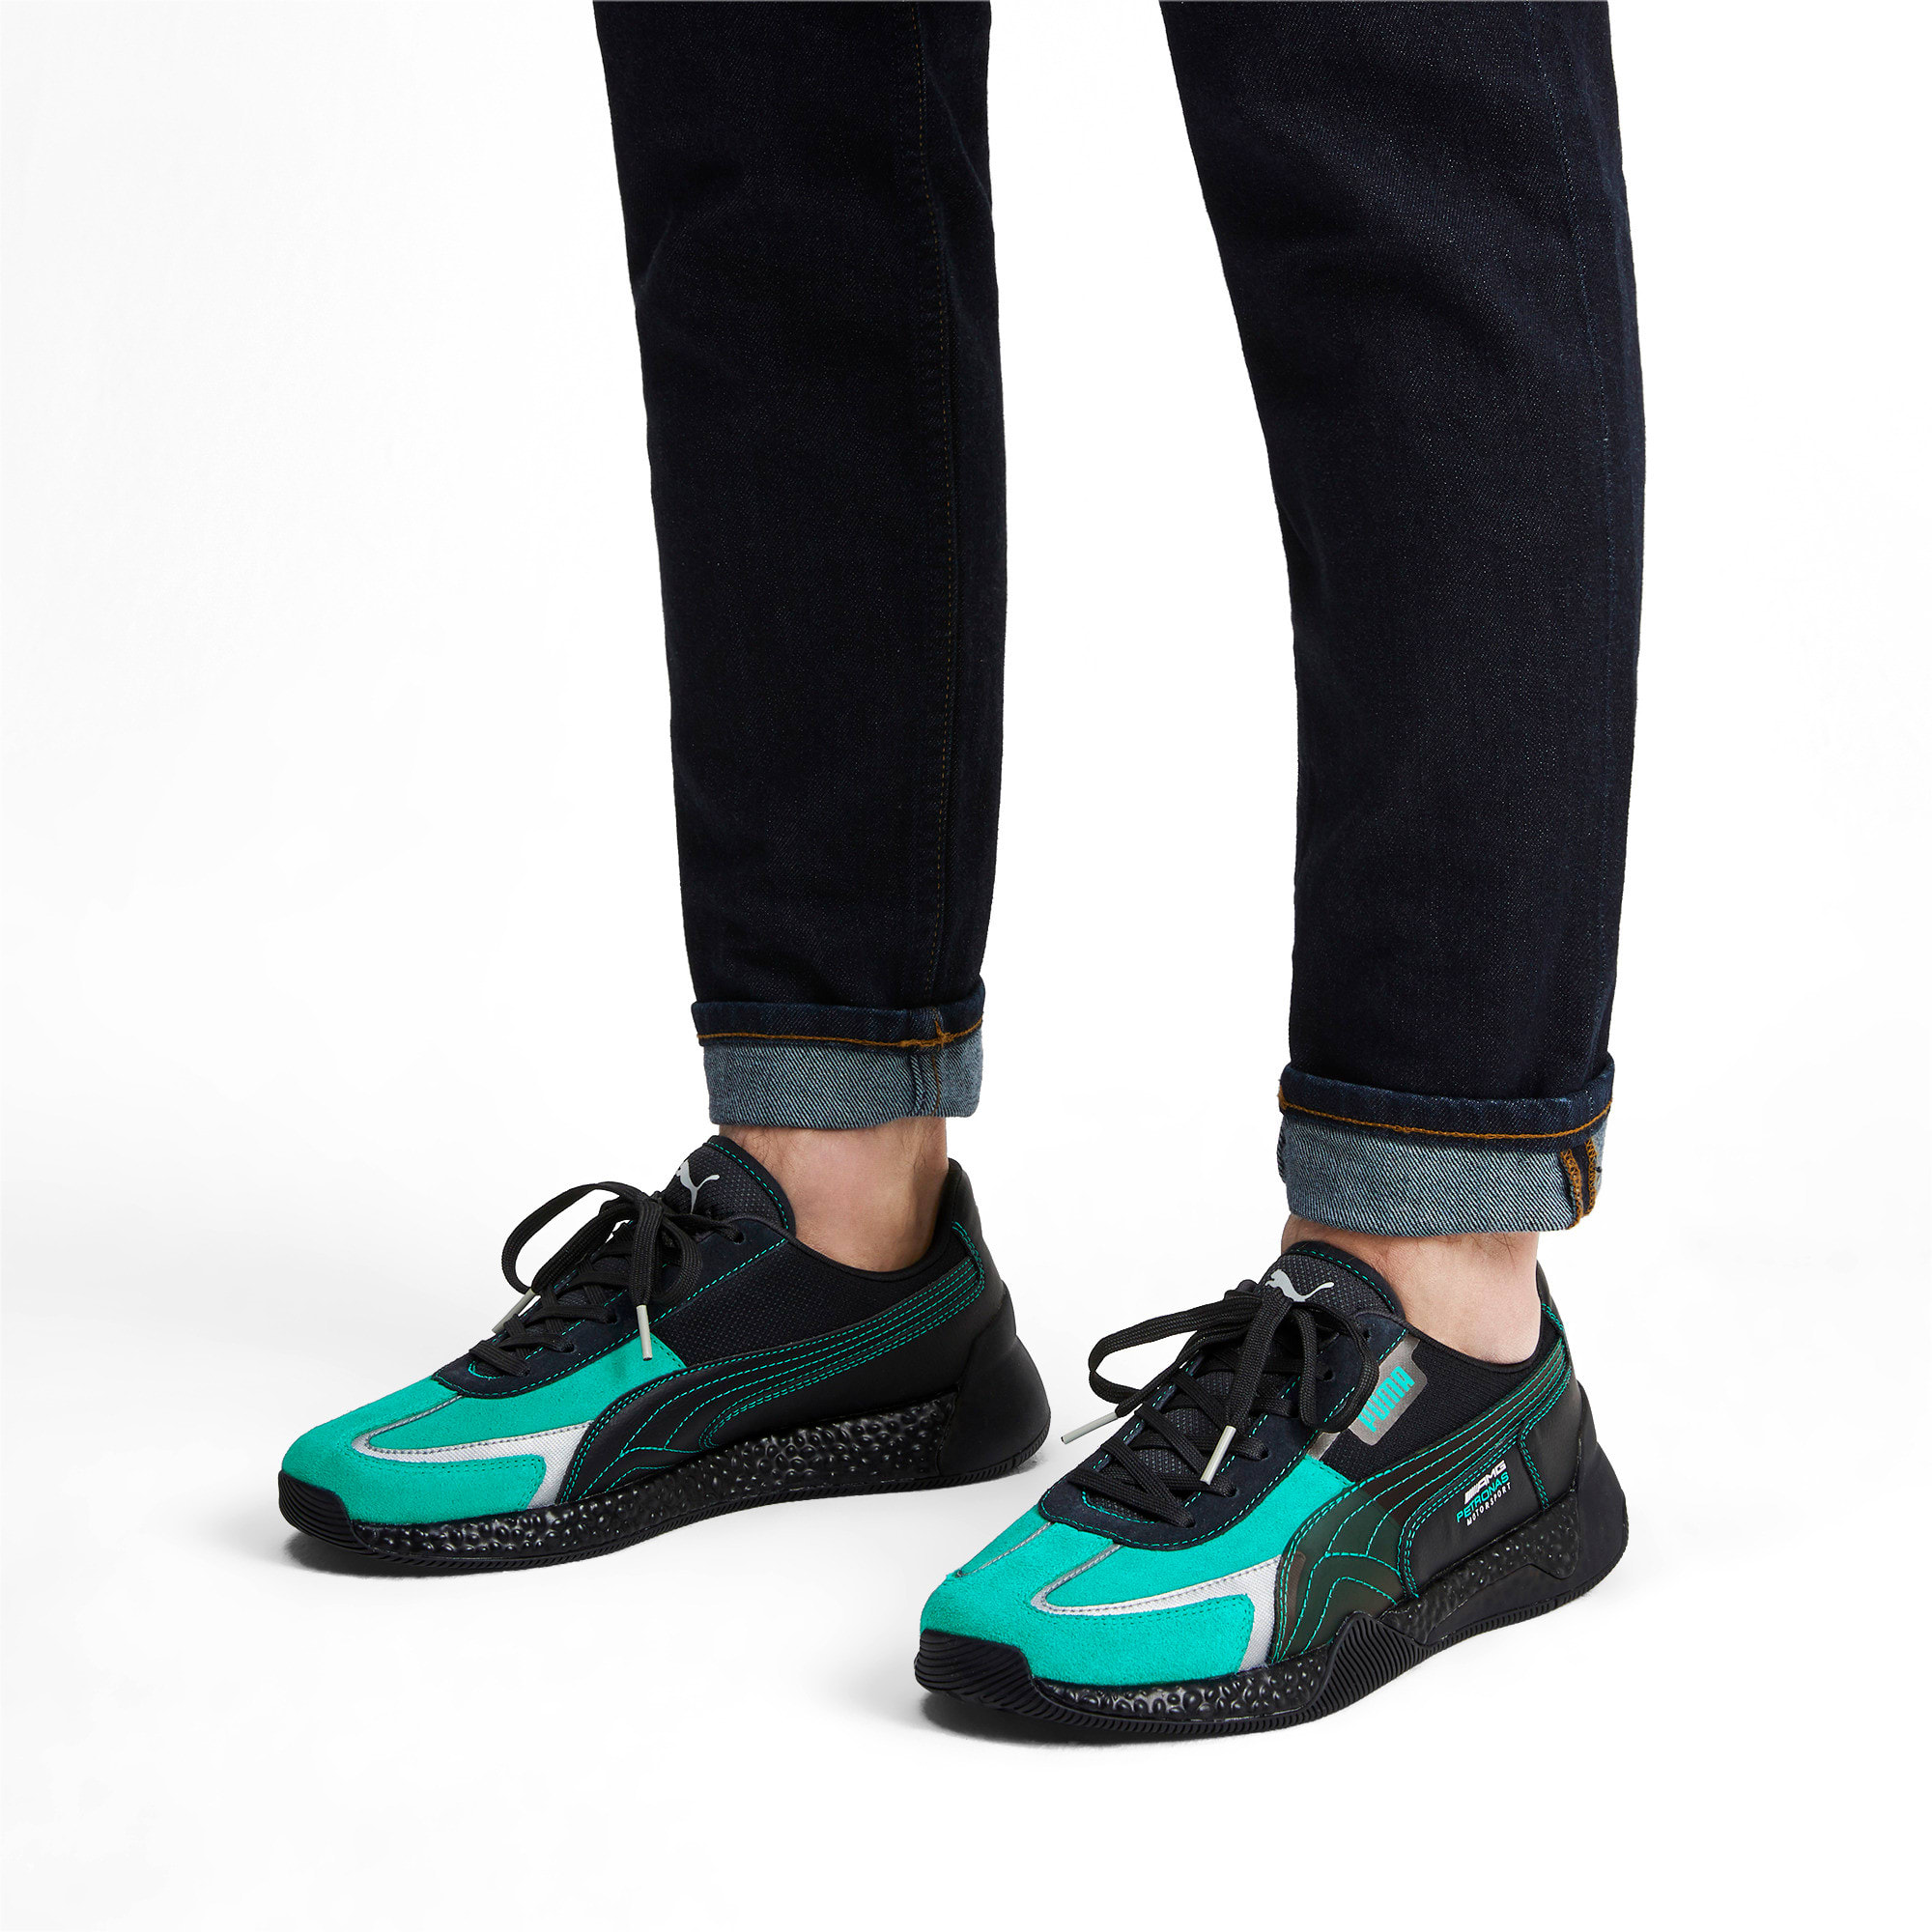 Thumbnail 2 of Mercedes AMG Petronas Speed HYBRID Running Shoes, Puma Black-Spectra Green, medium